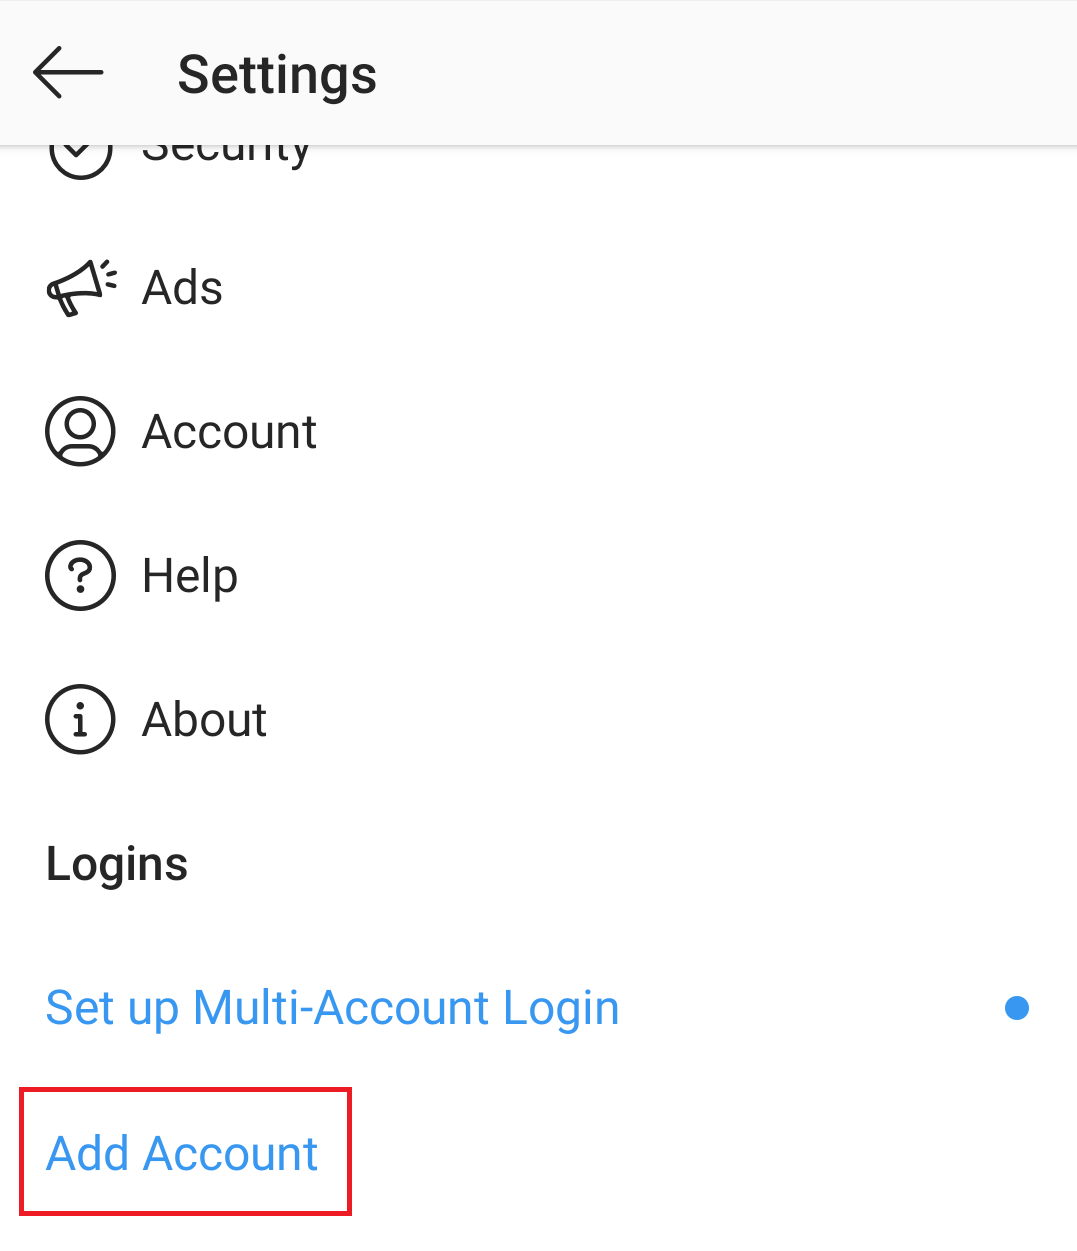 Open Setting to add multiple Account